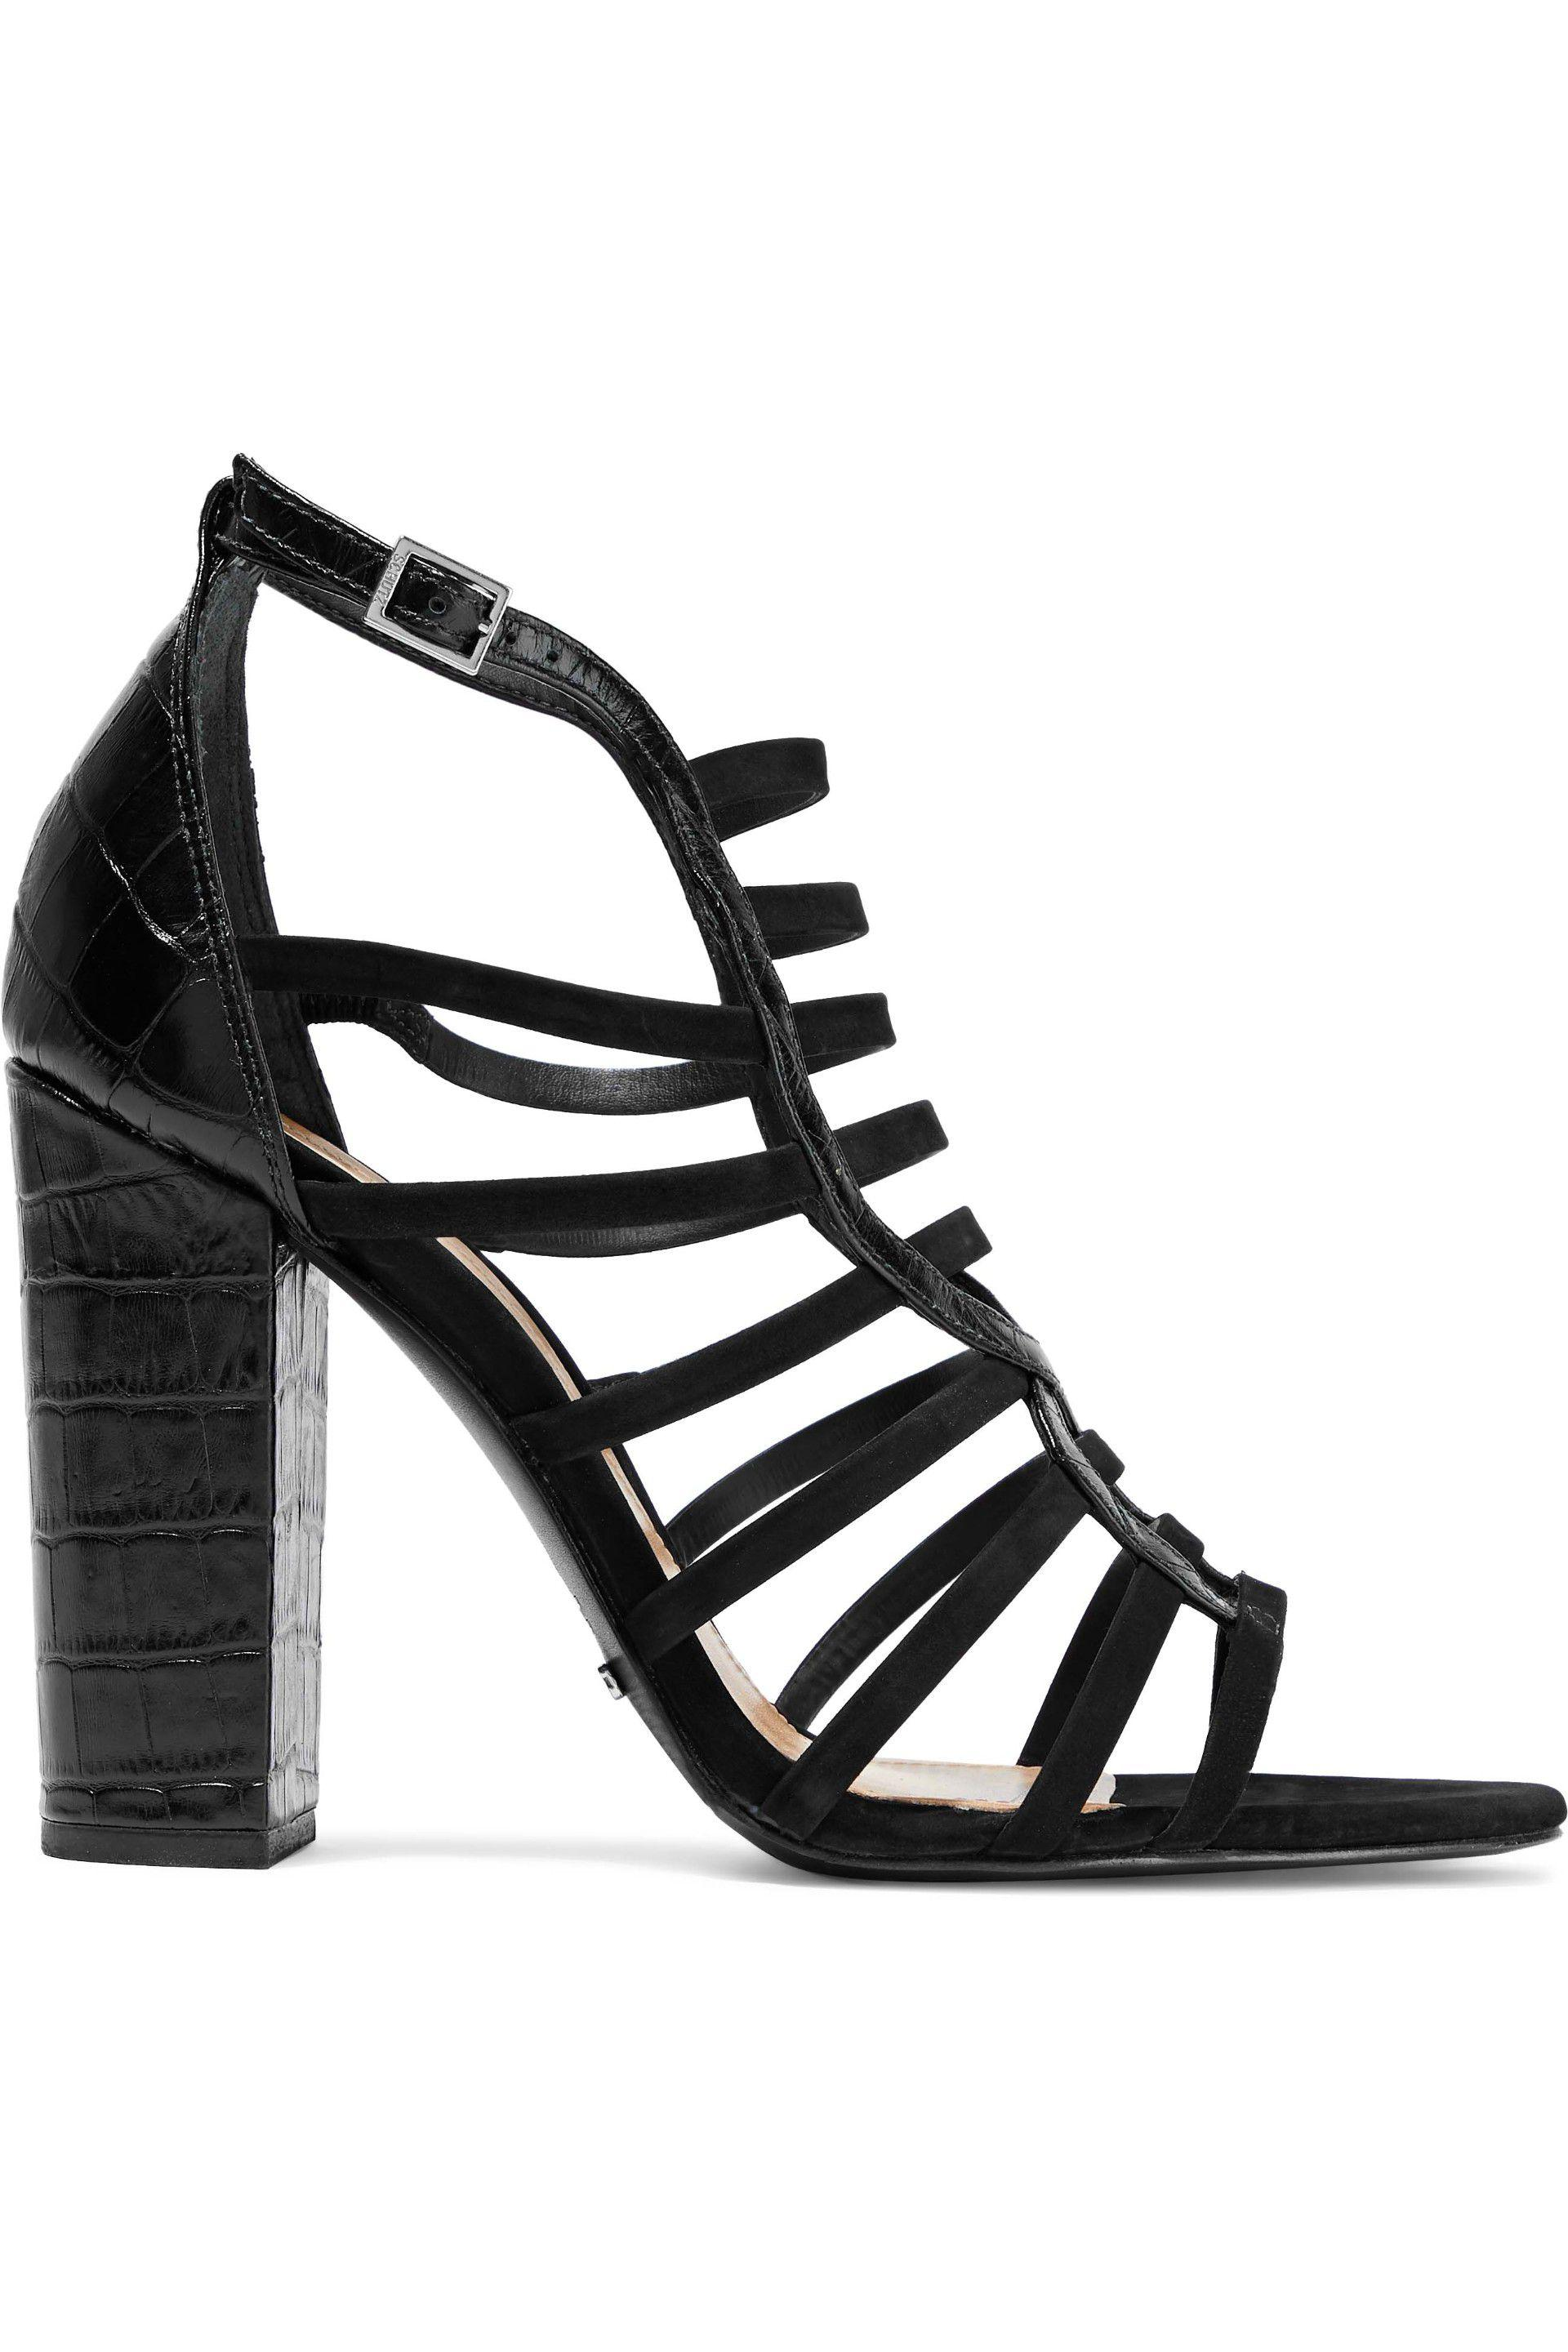 e86dec2b521b34 Schutz Kaye Croc-effect Leather And Nubuck Sandals in Black - Lyst